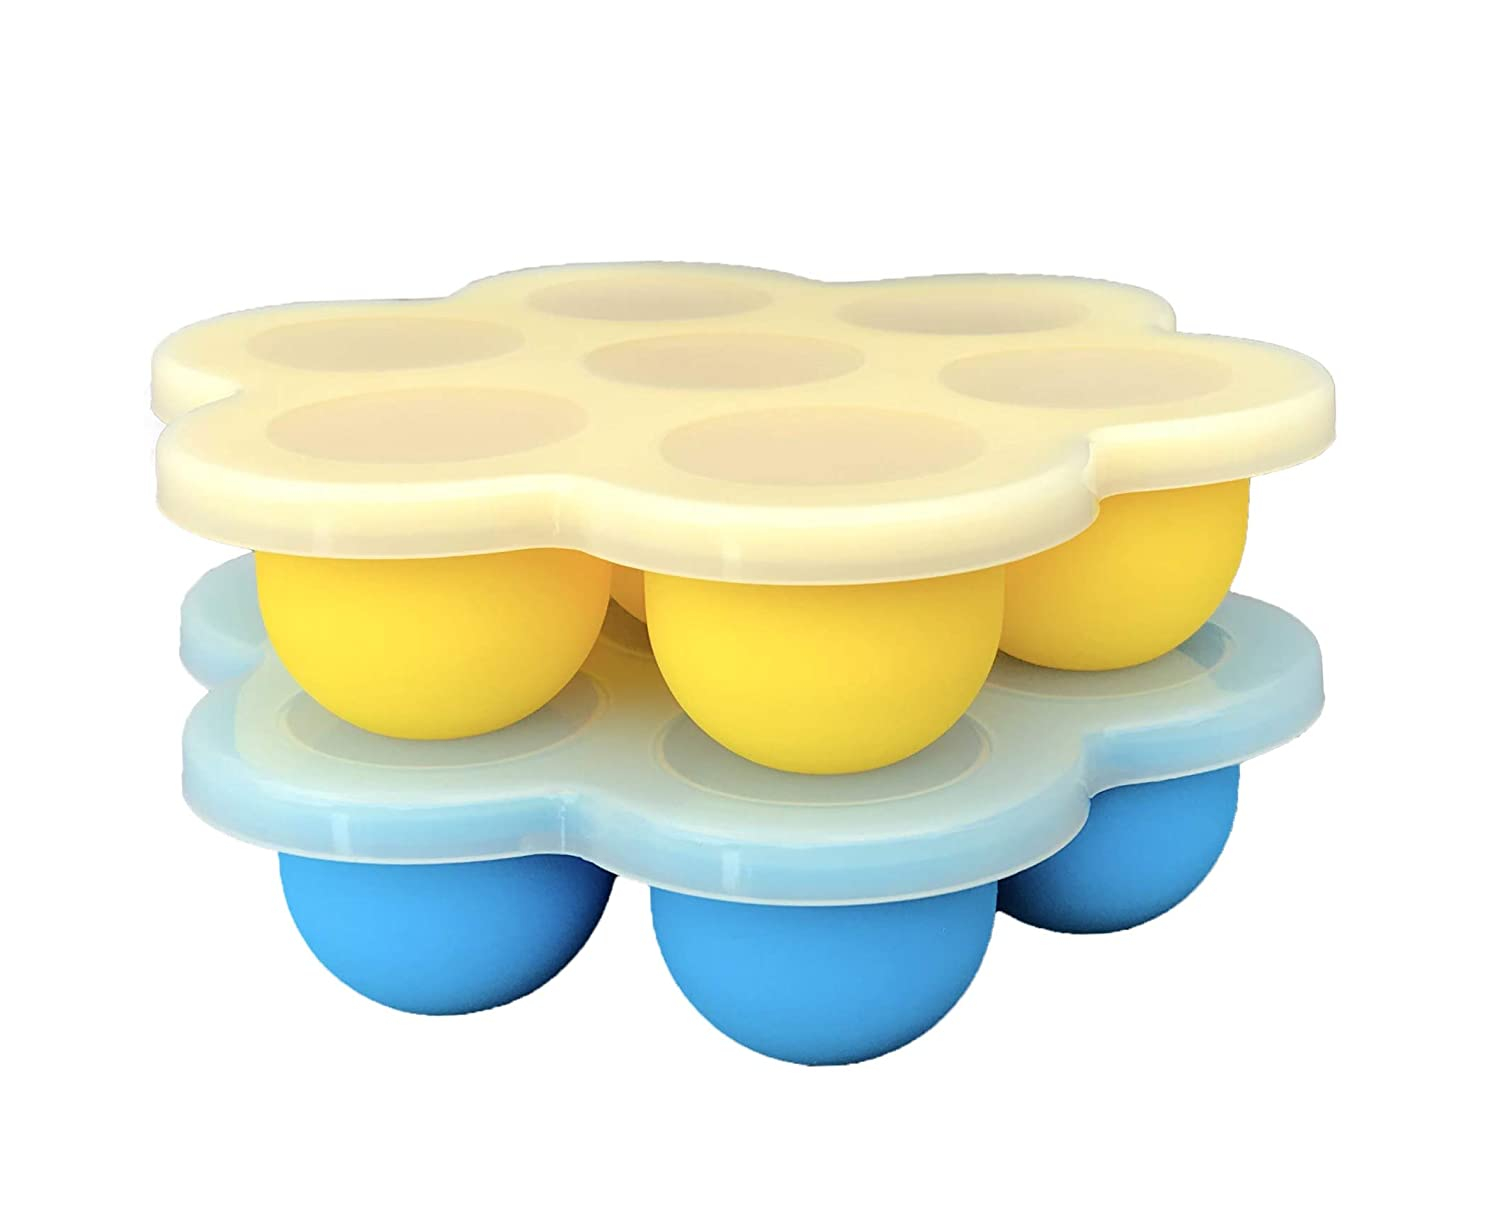 2-PACK Instant Pot Egg Bites Silicone Mold Accessories for Mini 3 Quart, 5, 6 qt Pressure Cooker - BPA Free Molds for Fat Bombs, Sous Vide Egg Bite, Baby Food Freezer Trays 1oz portions (Blue/Yellow)